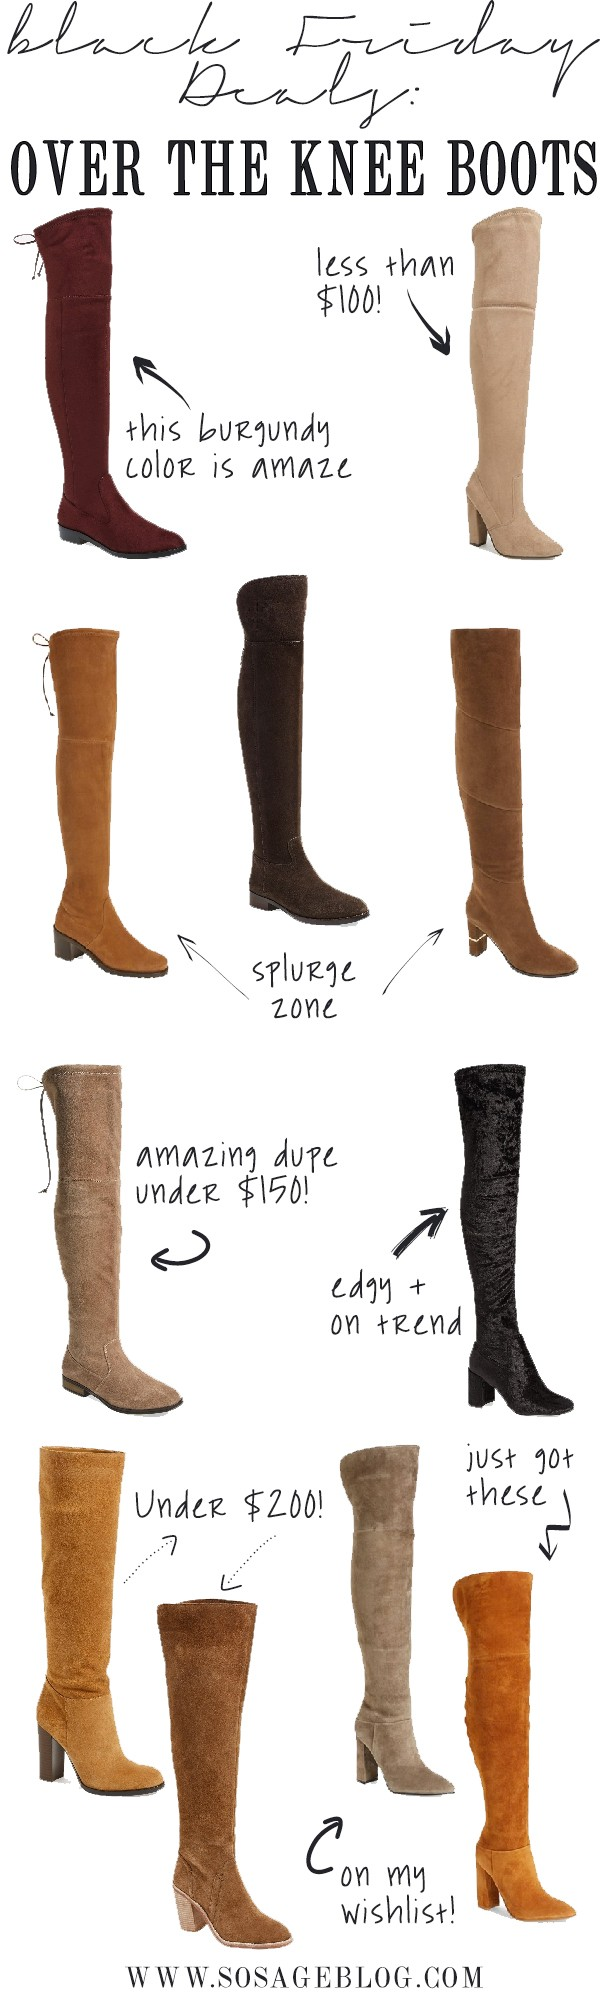 c730b5d5f41 Early Black Friday Sales: Save HUGE on Over the Knee Boots!